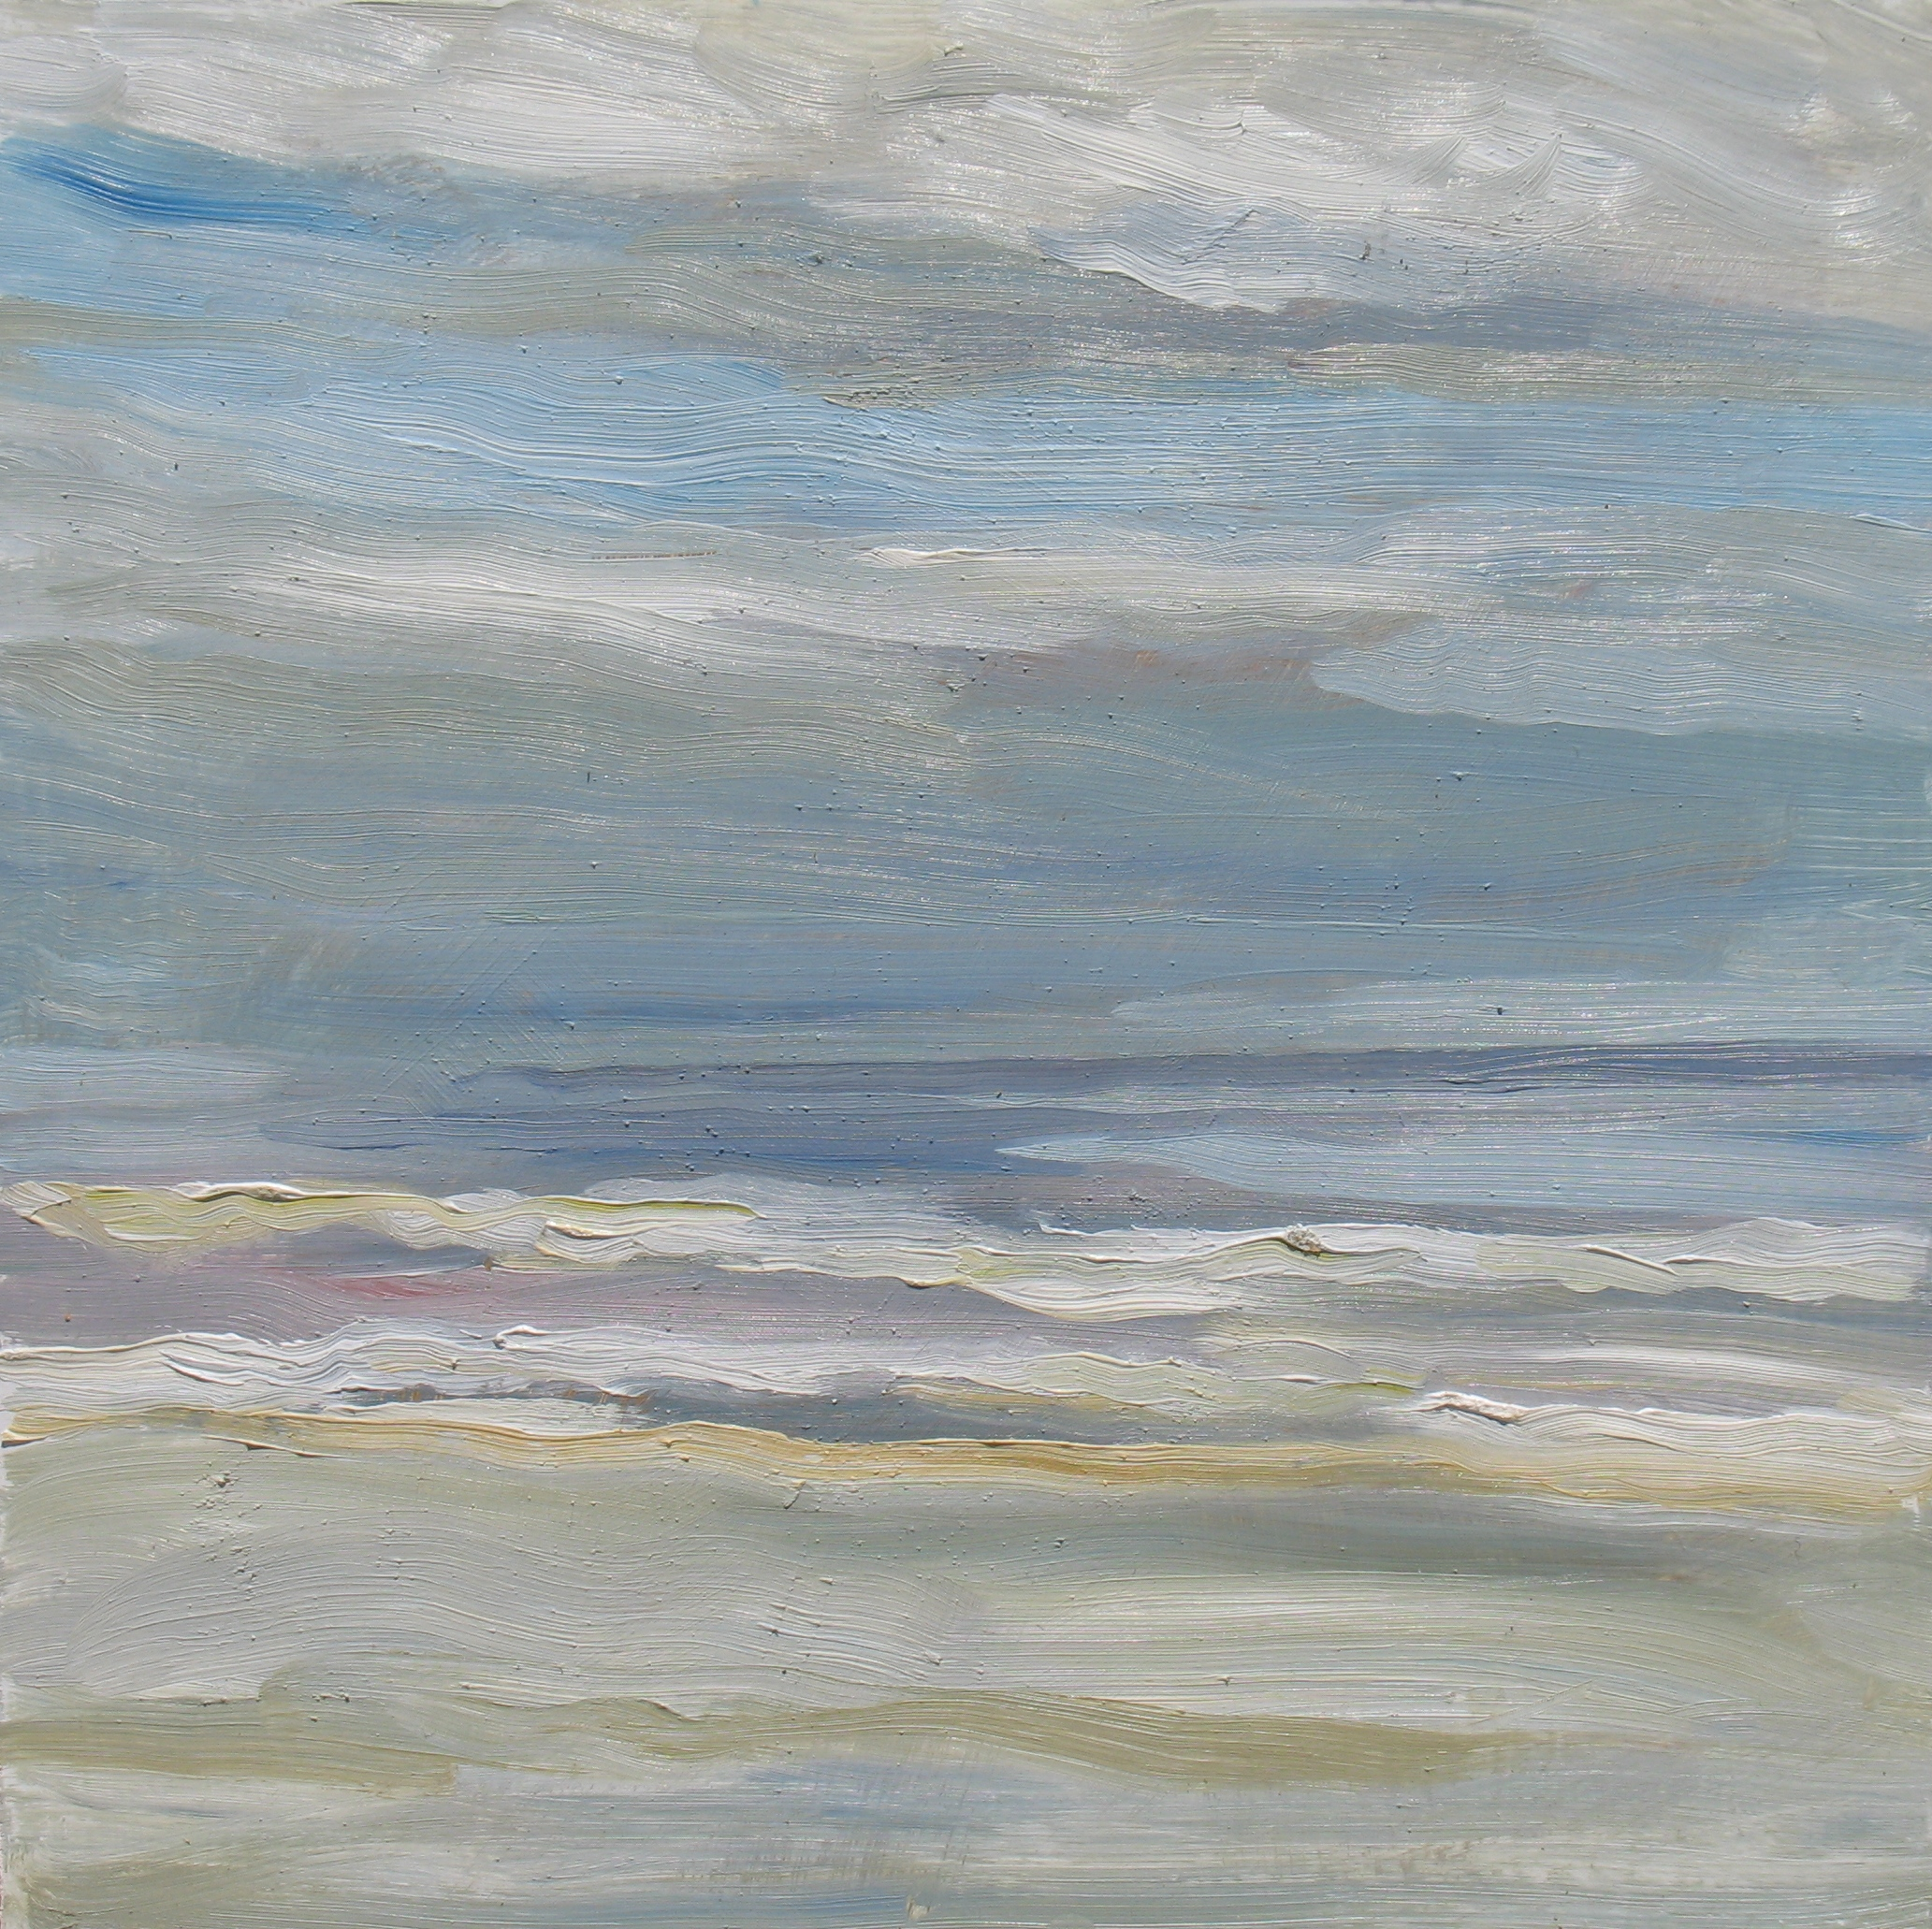 Waves and Light, 11 x 11 inches, 2011